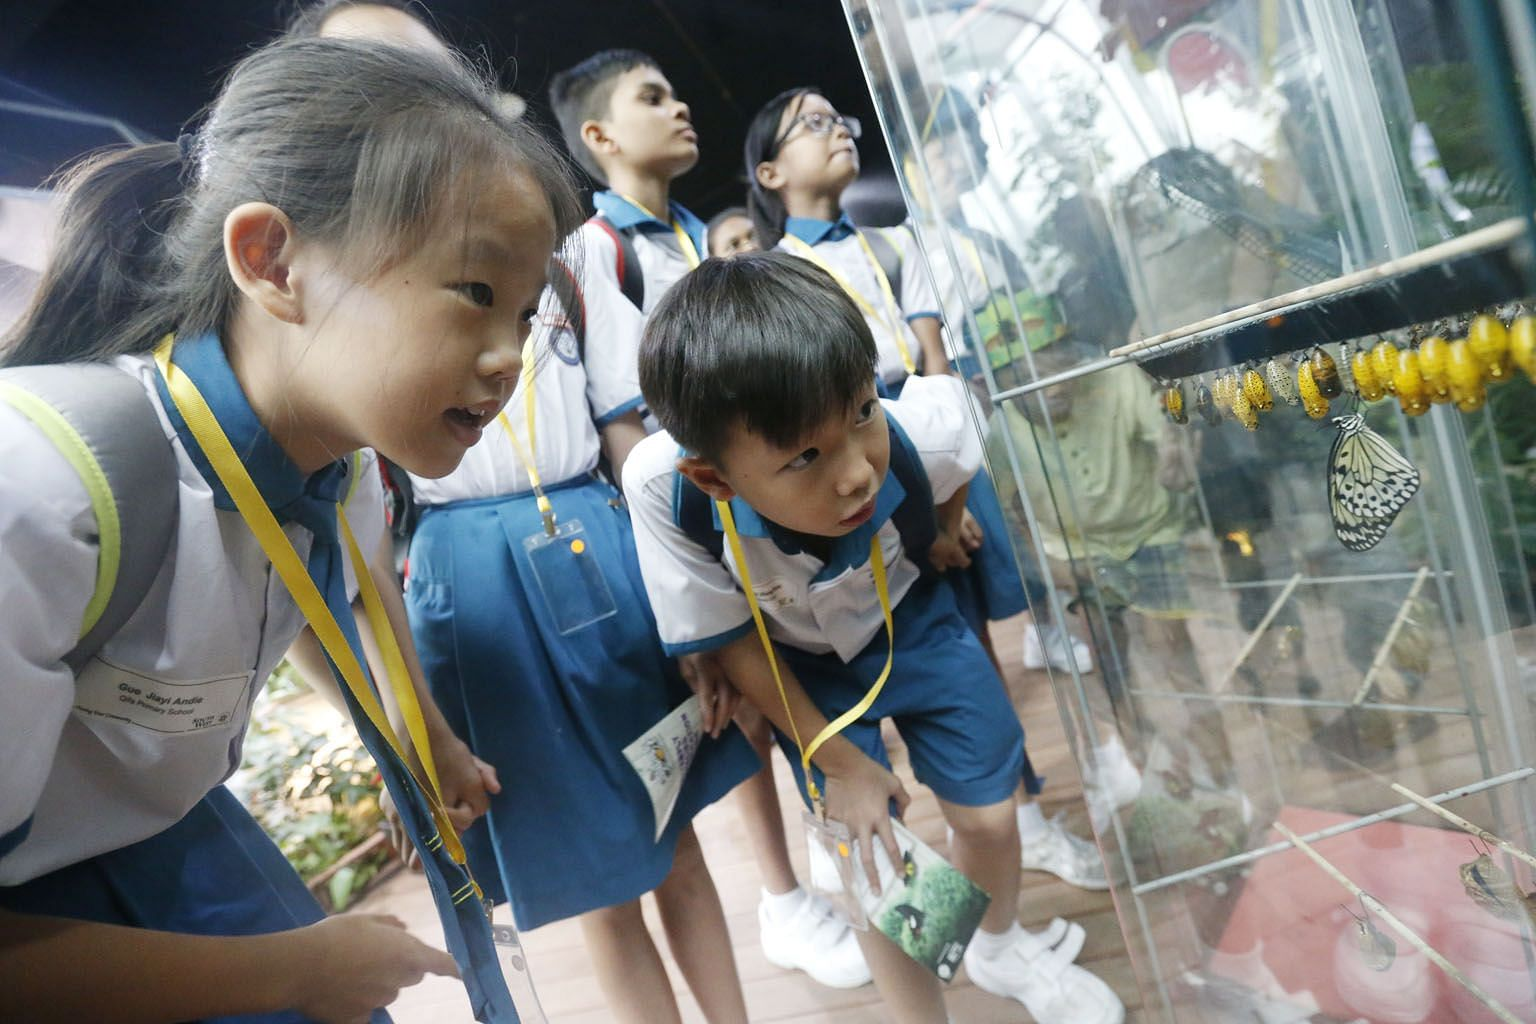 Pupils observing the different stages of butterfly metamorphosis at the Science Centre. Developing an open, scientific mindset starts with getting young children passionate about science and technology, and how these impact the world they live in, sa